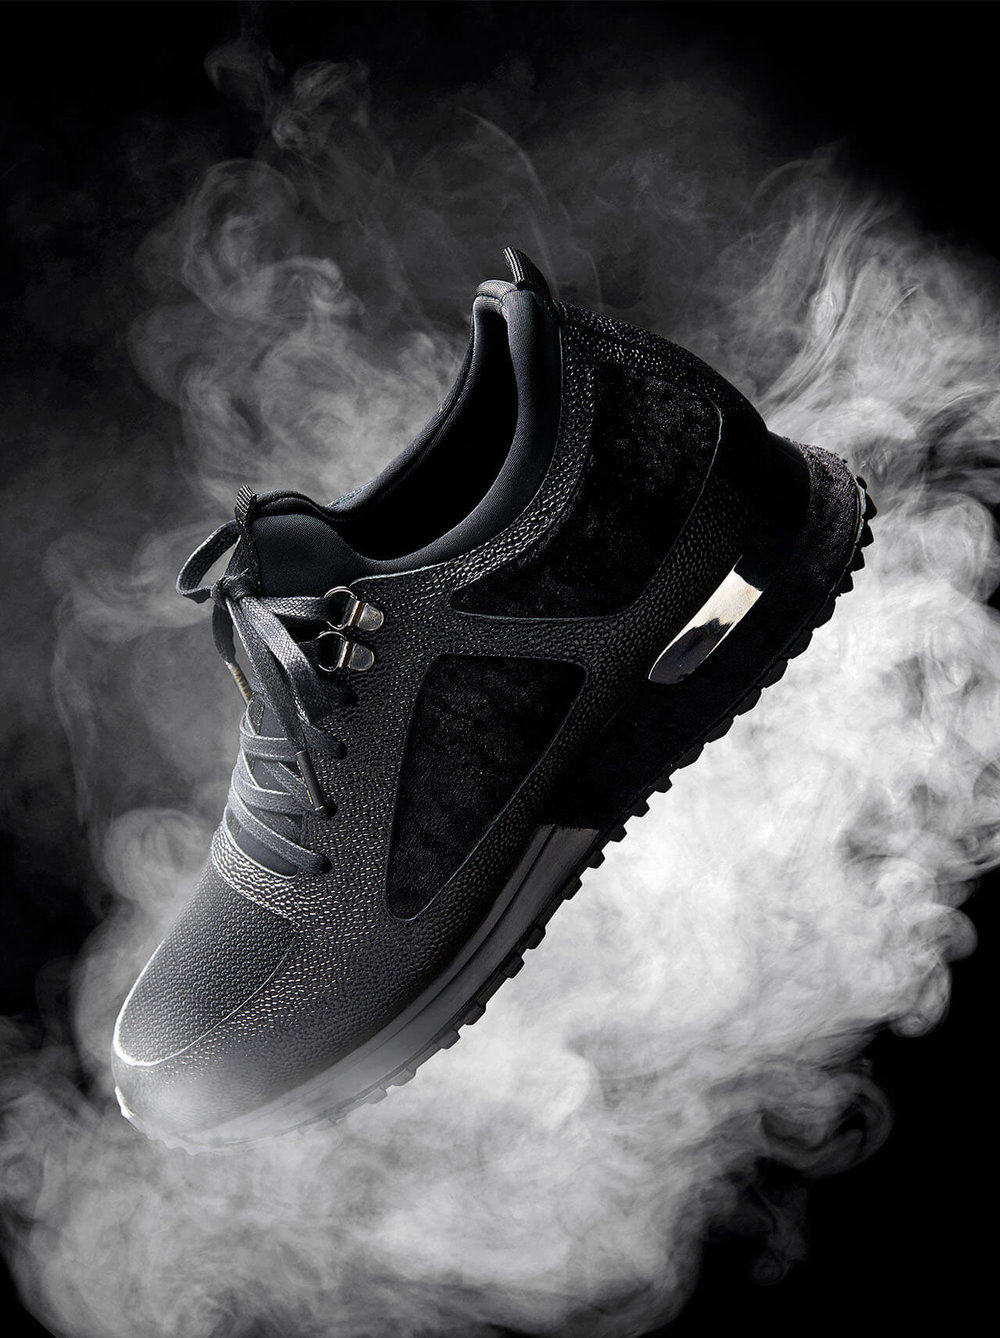 Mallet Footwear<strong>Read More</strong>